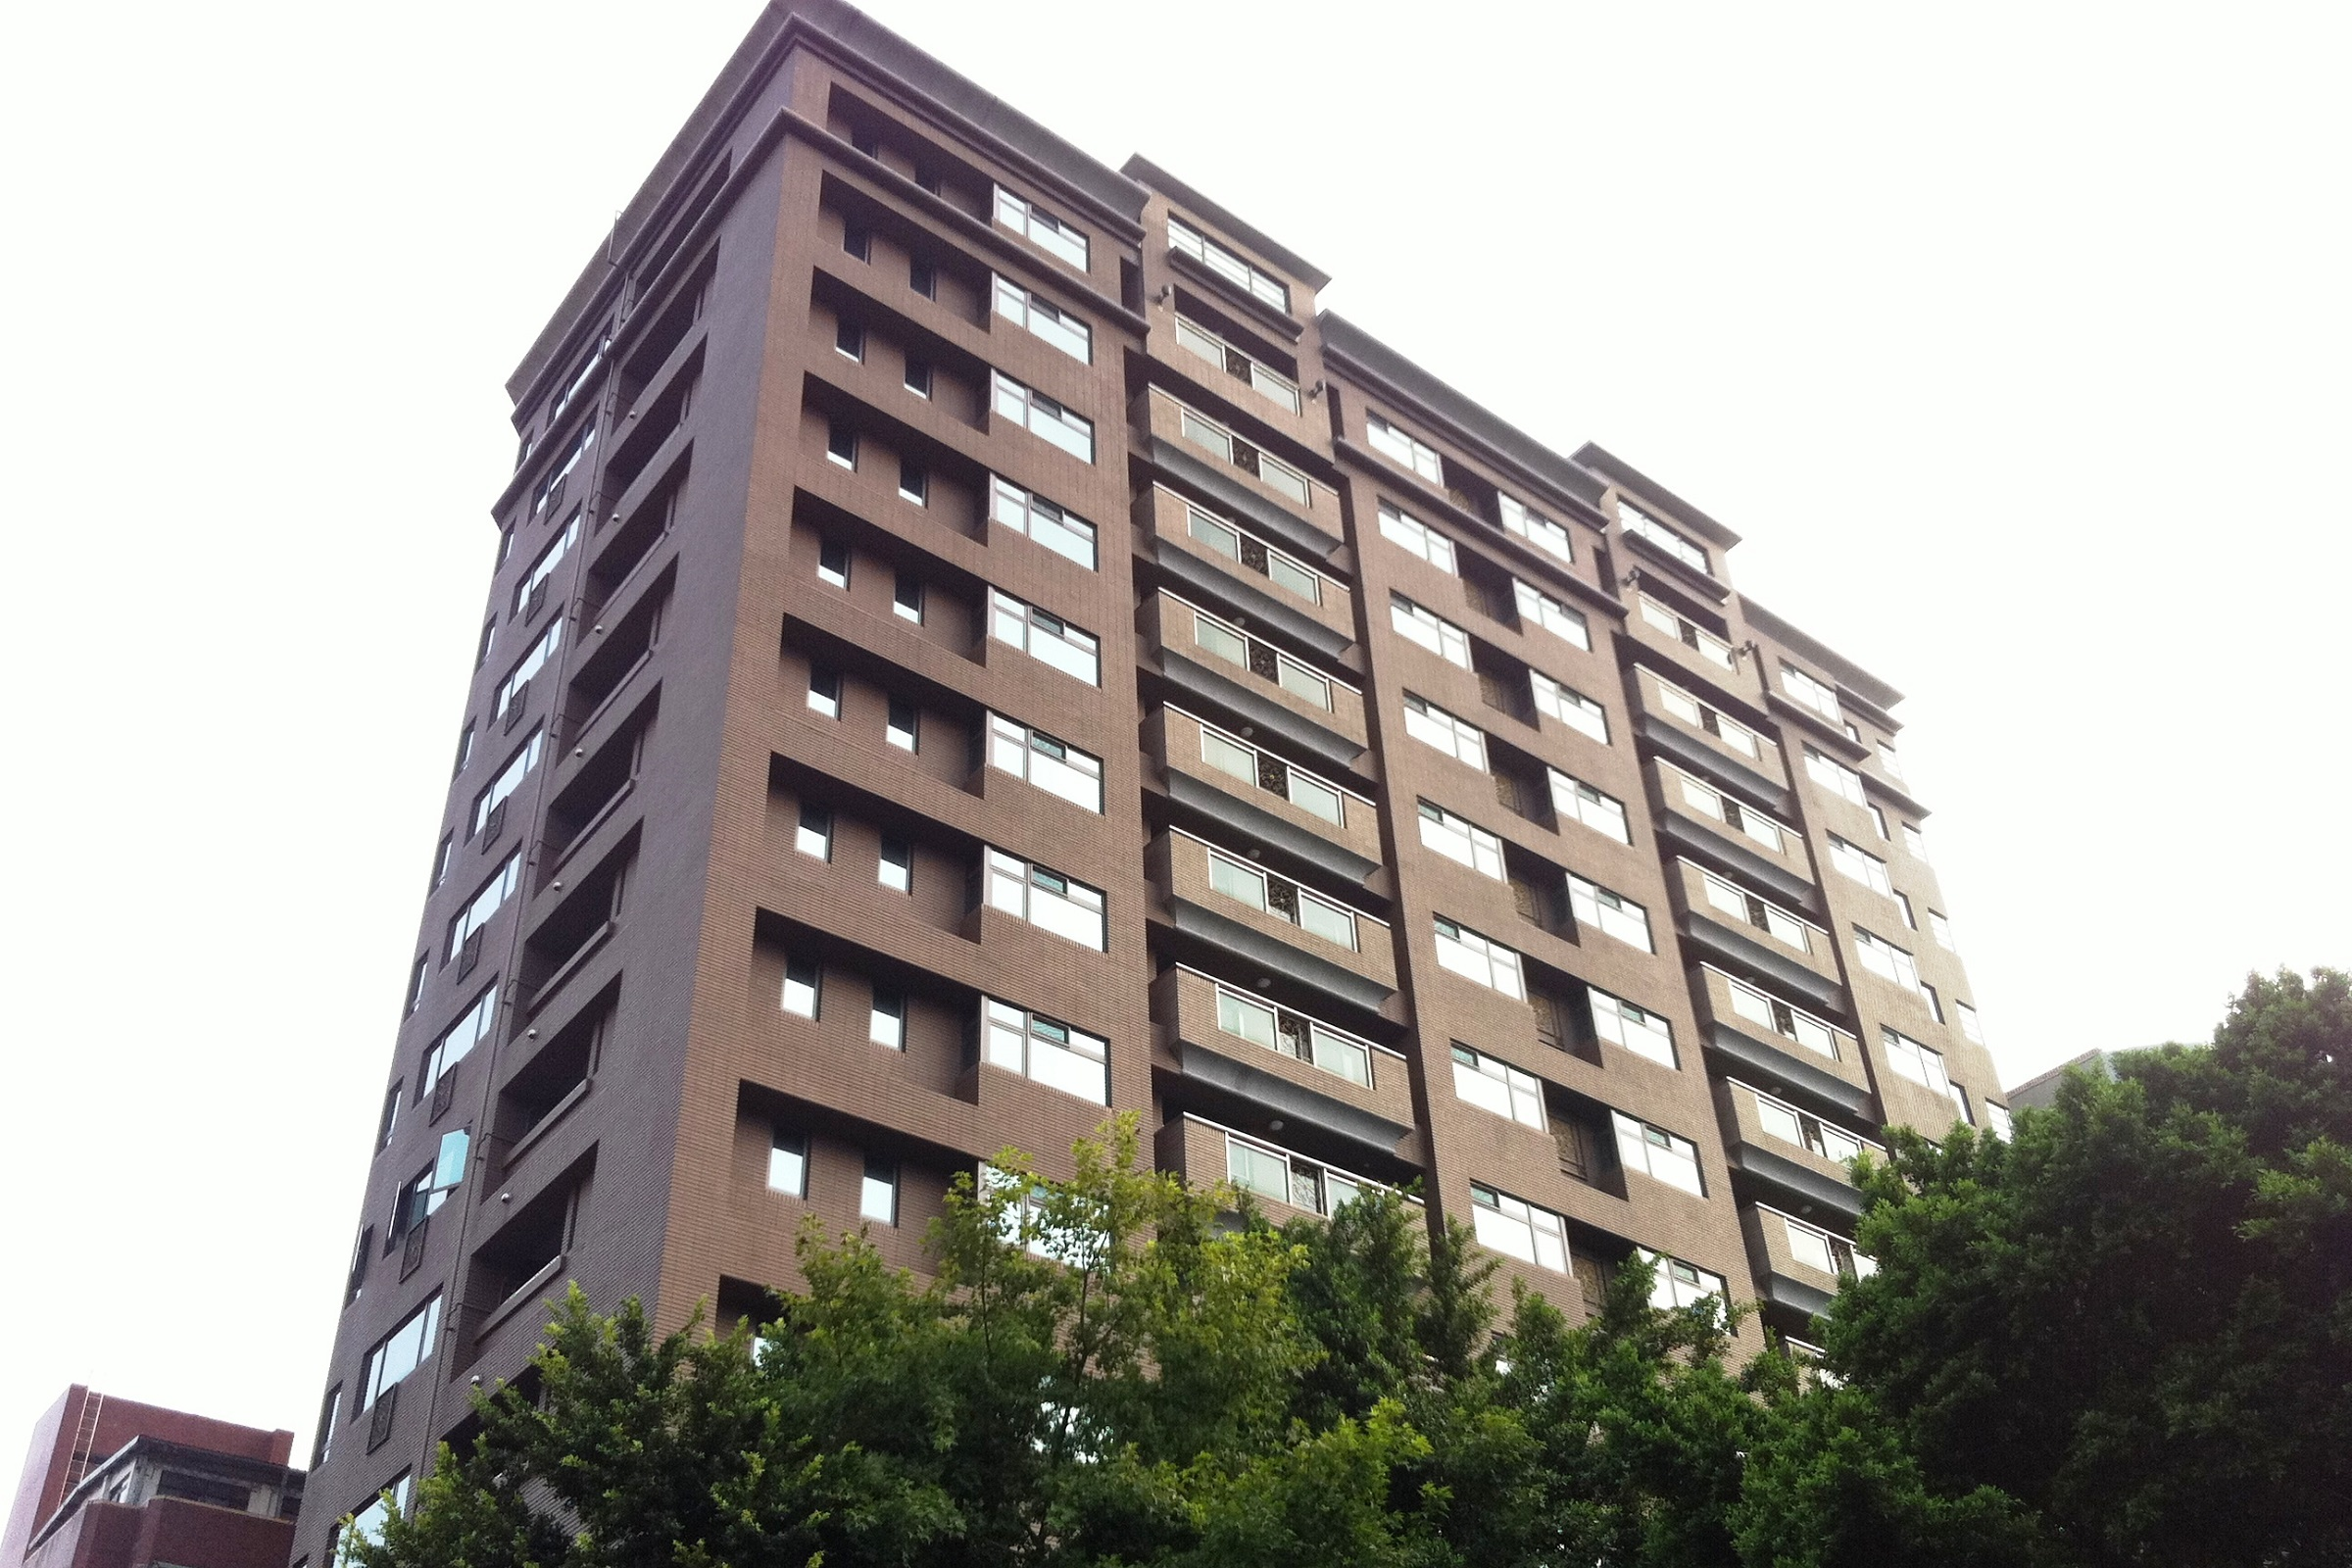 Apartment for Sale at Artview Court Sec. 4, Ren'ai Rd., Xinyi Dist. Taipei City, 110 Taiwan